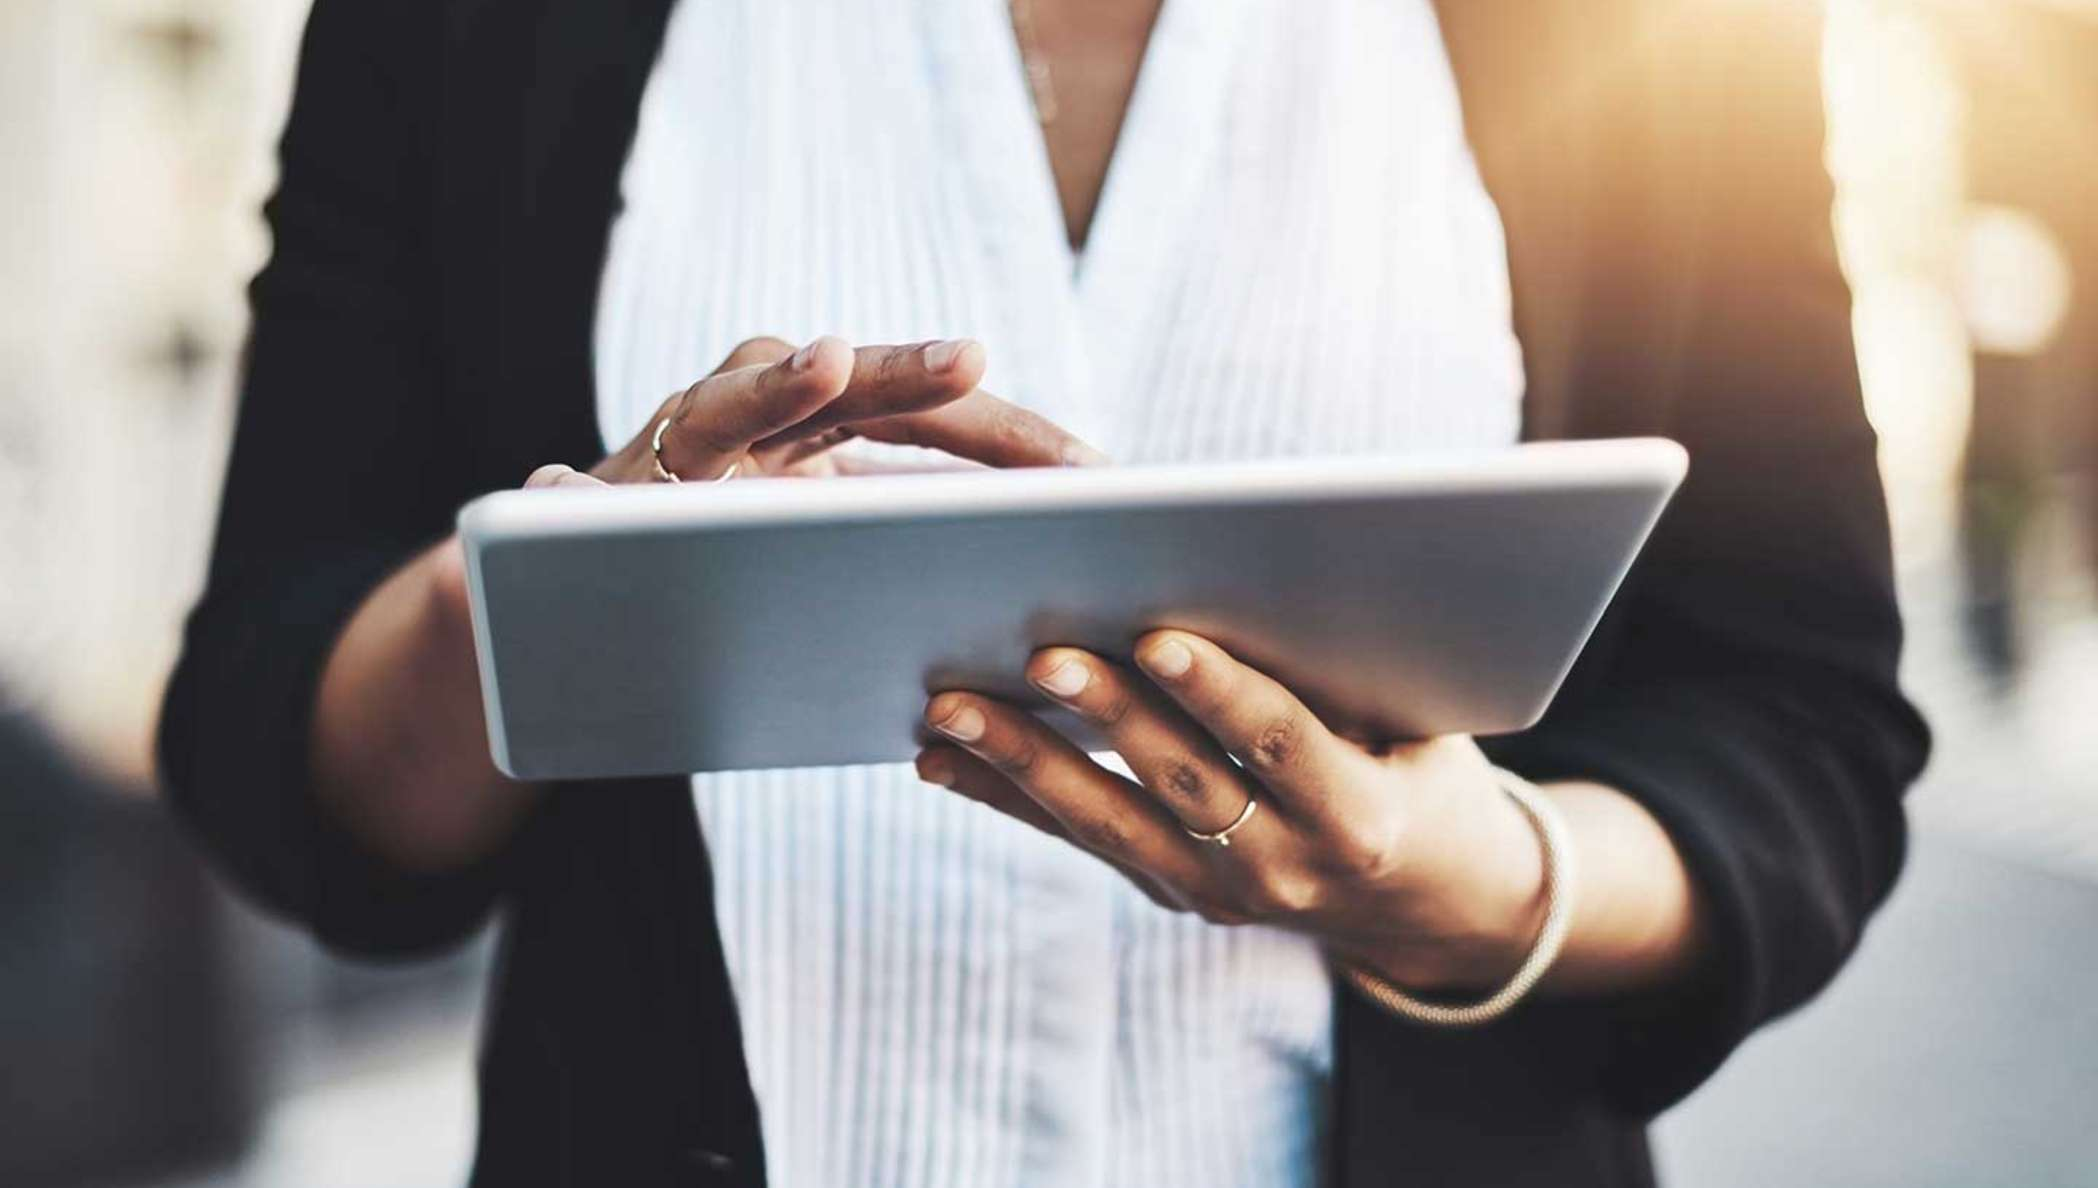 A businesswoman is checking her tablet for information on a document to sign